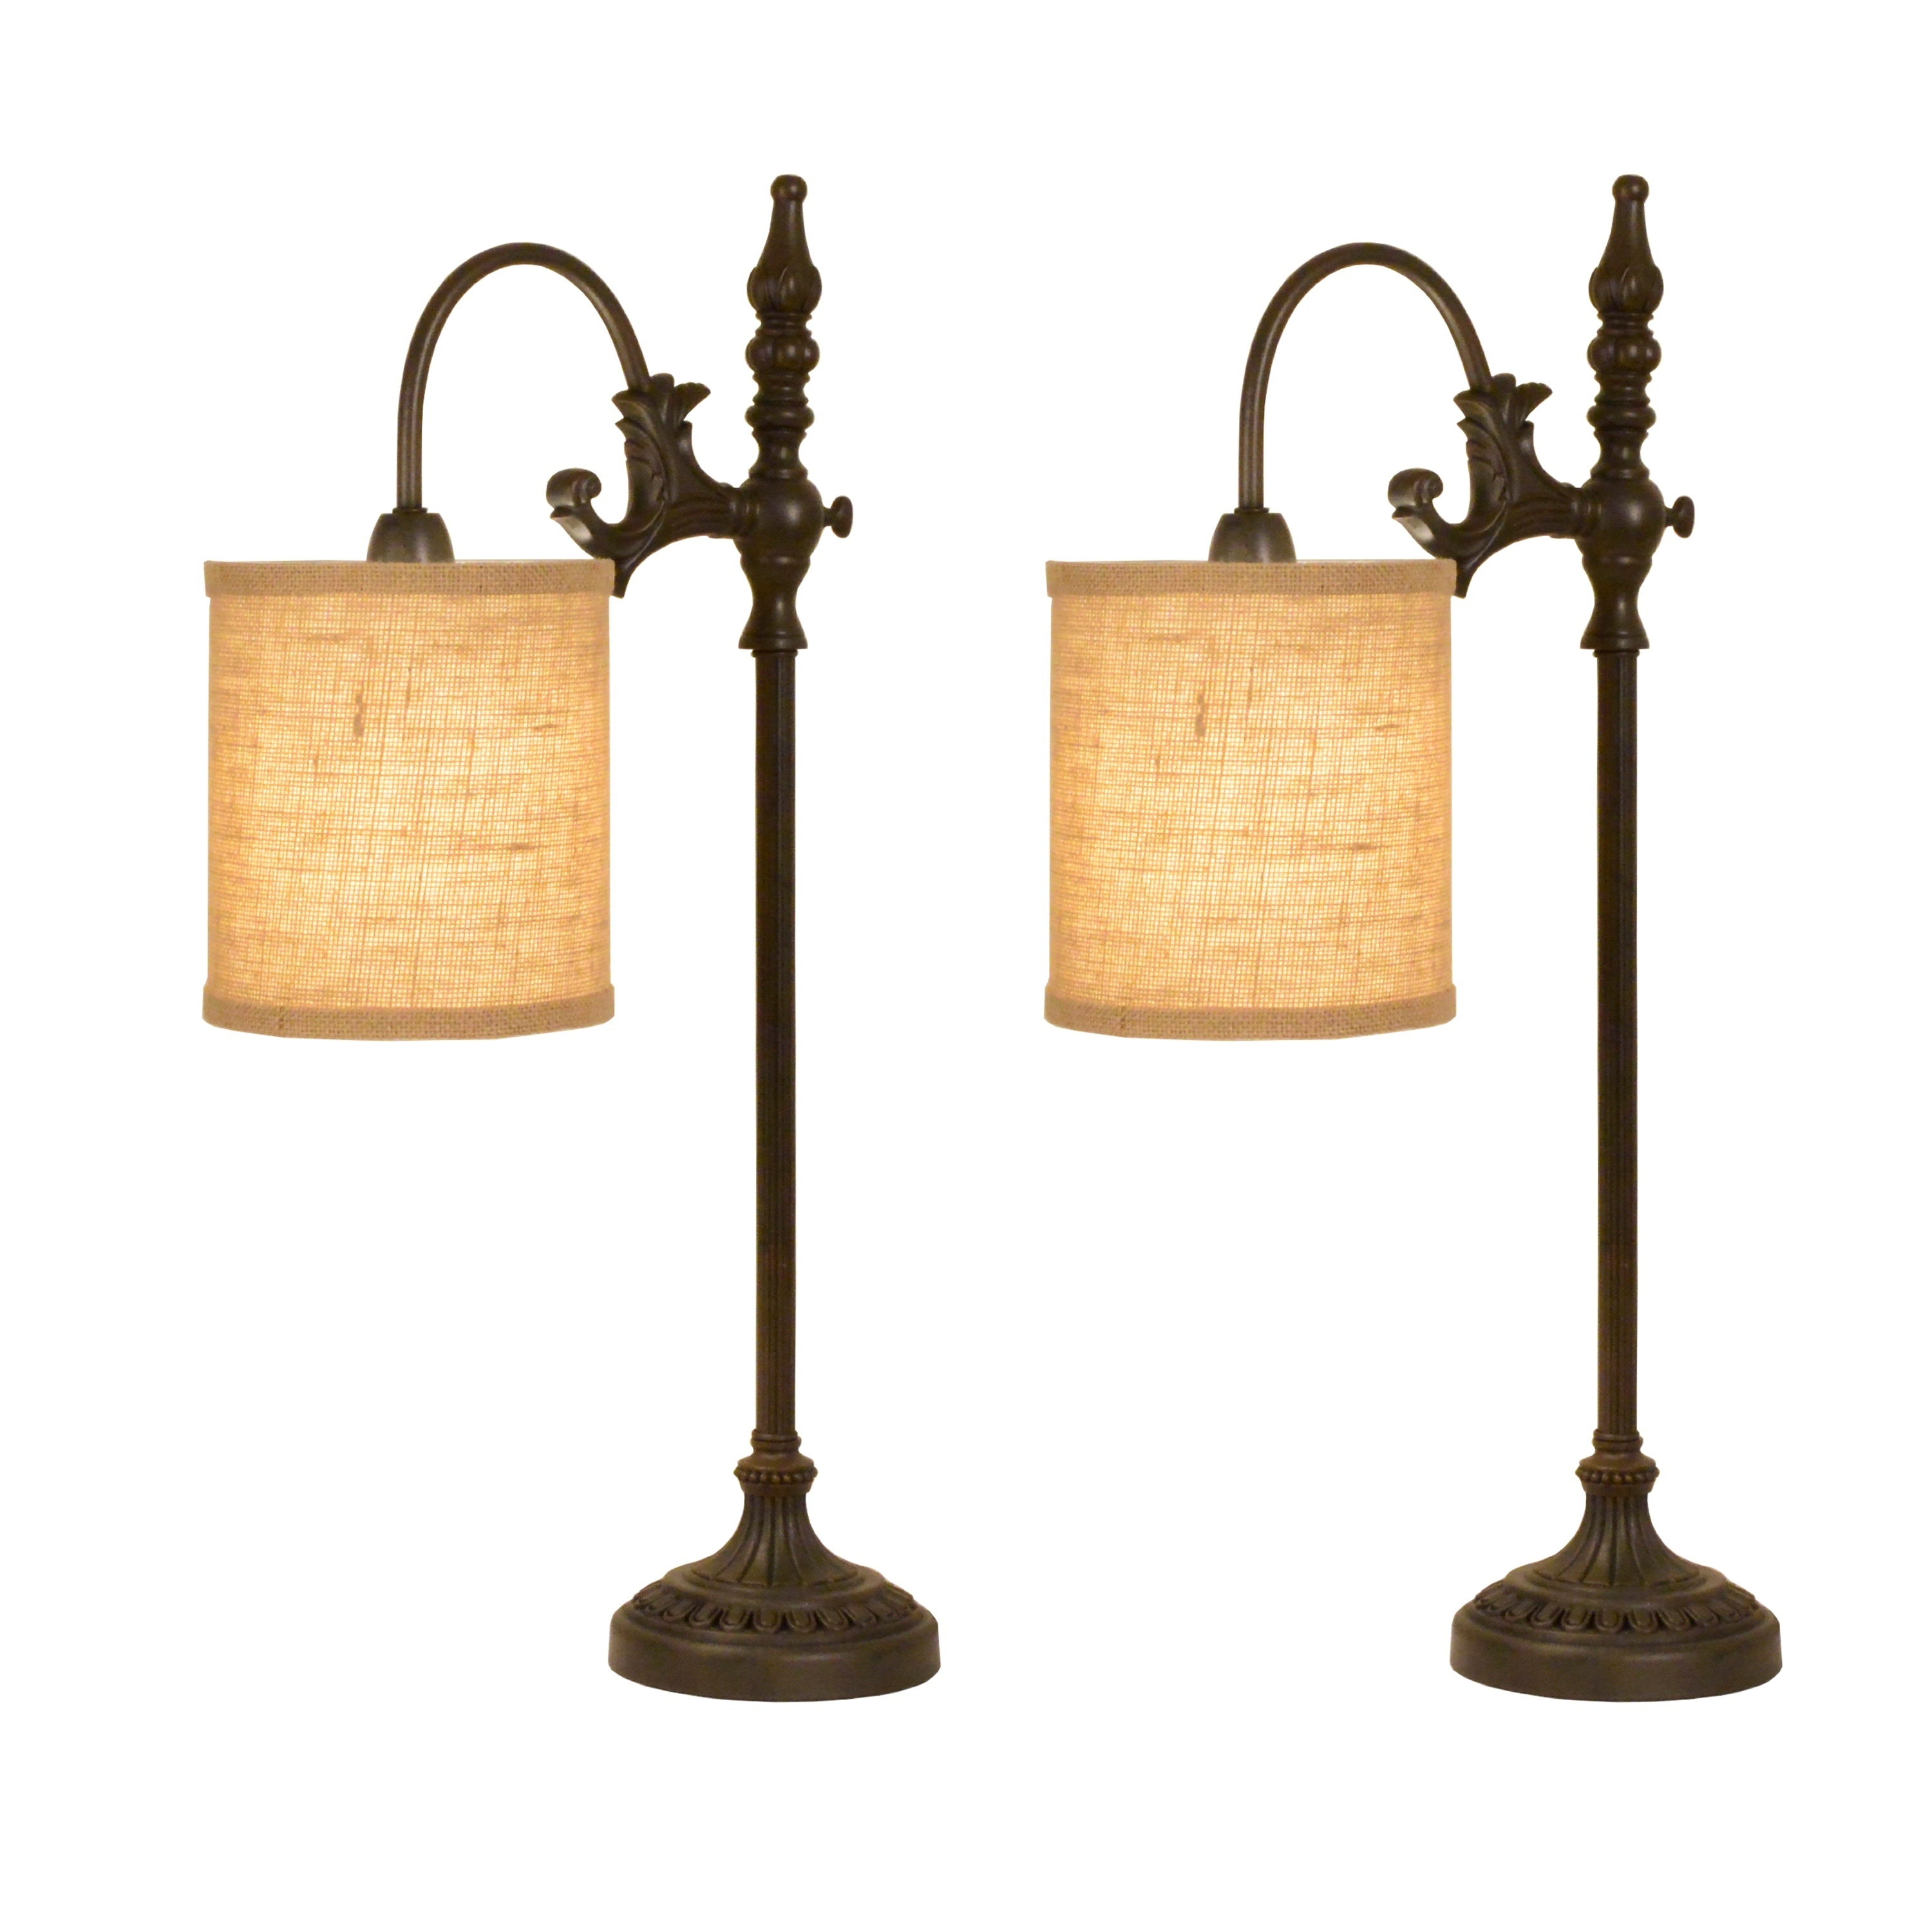 Lowell Arched Table Lamp Set Of 2 Overstock 31688144 Weathered White